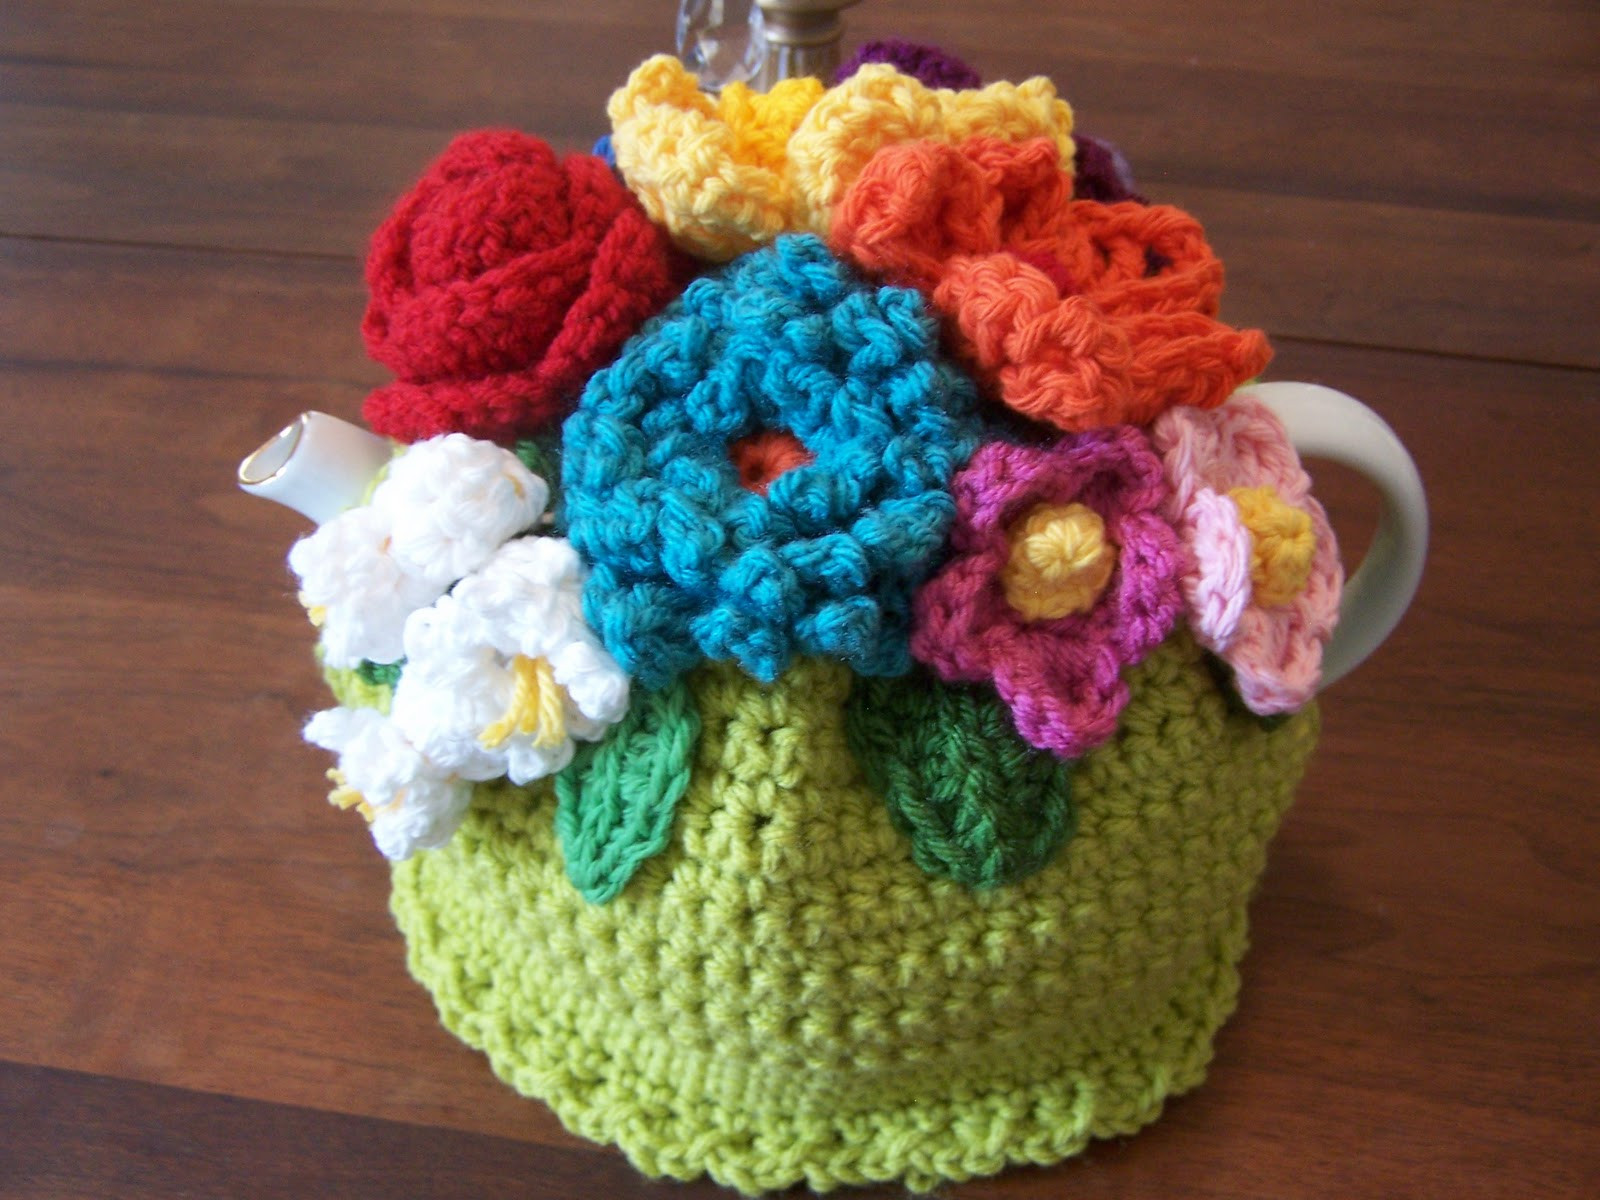 Tea Cosy Patterns New 10 Free Tea Cozy Crochet Patterns You Ll Love Making Of Innovative 44 Models Tea Cosy Patterns